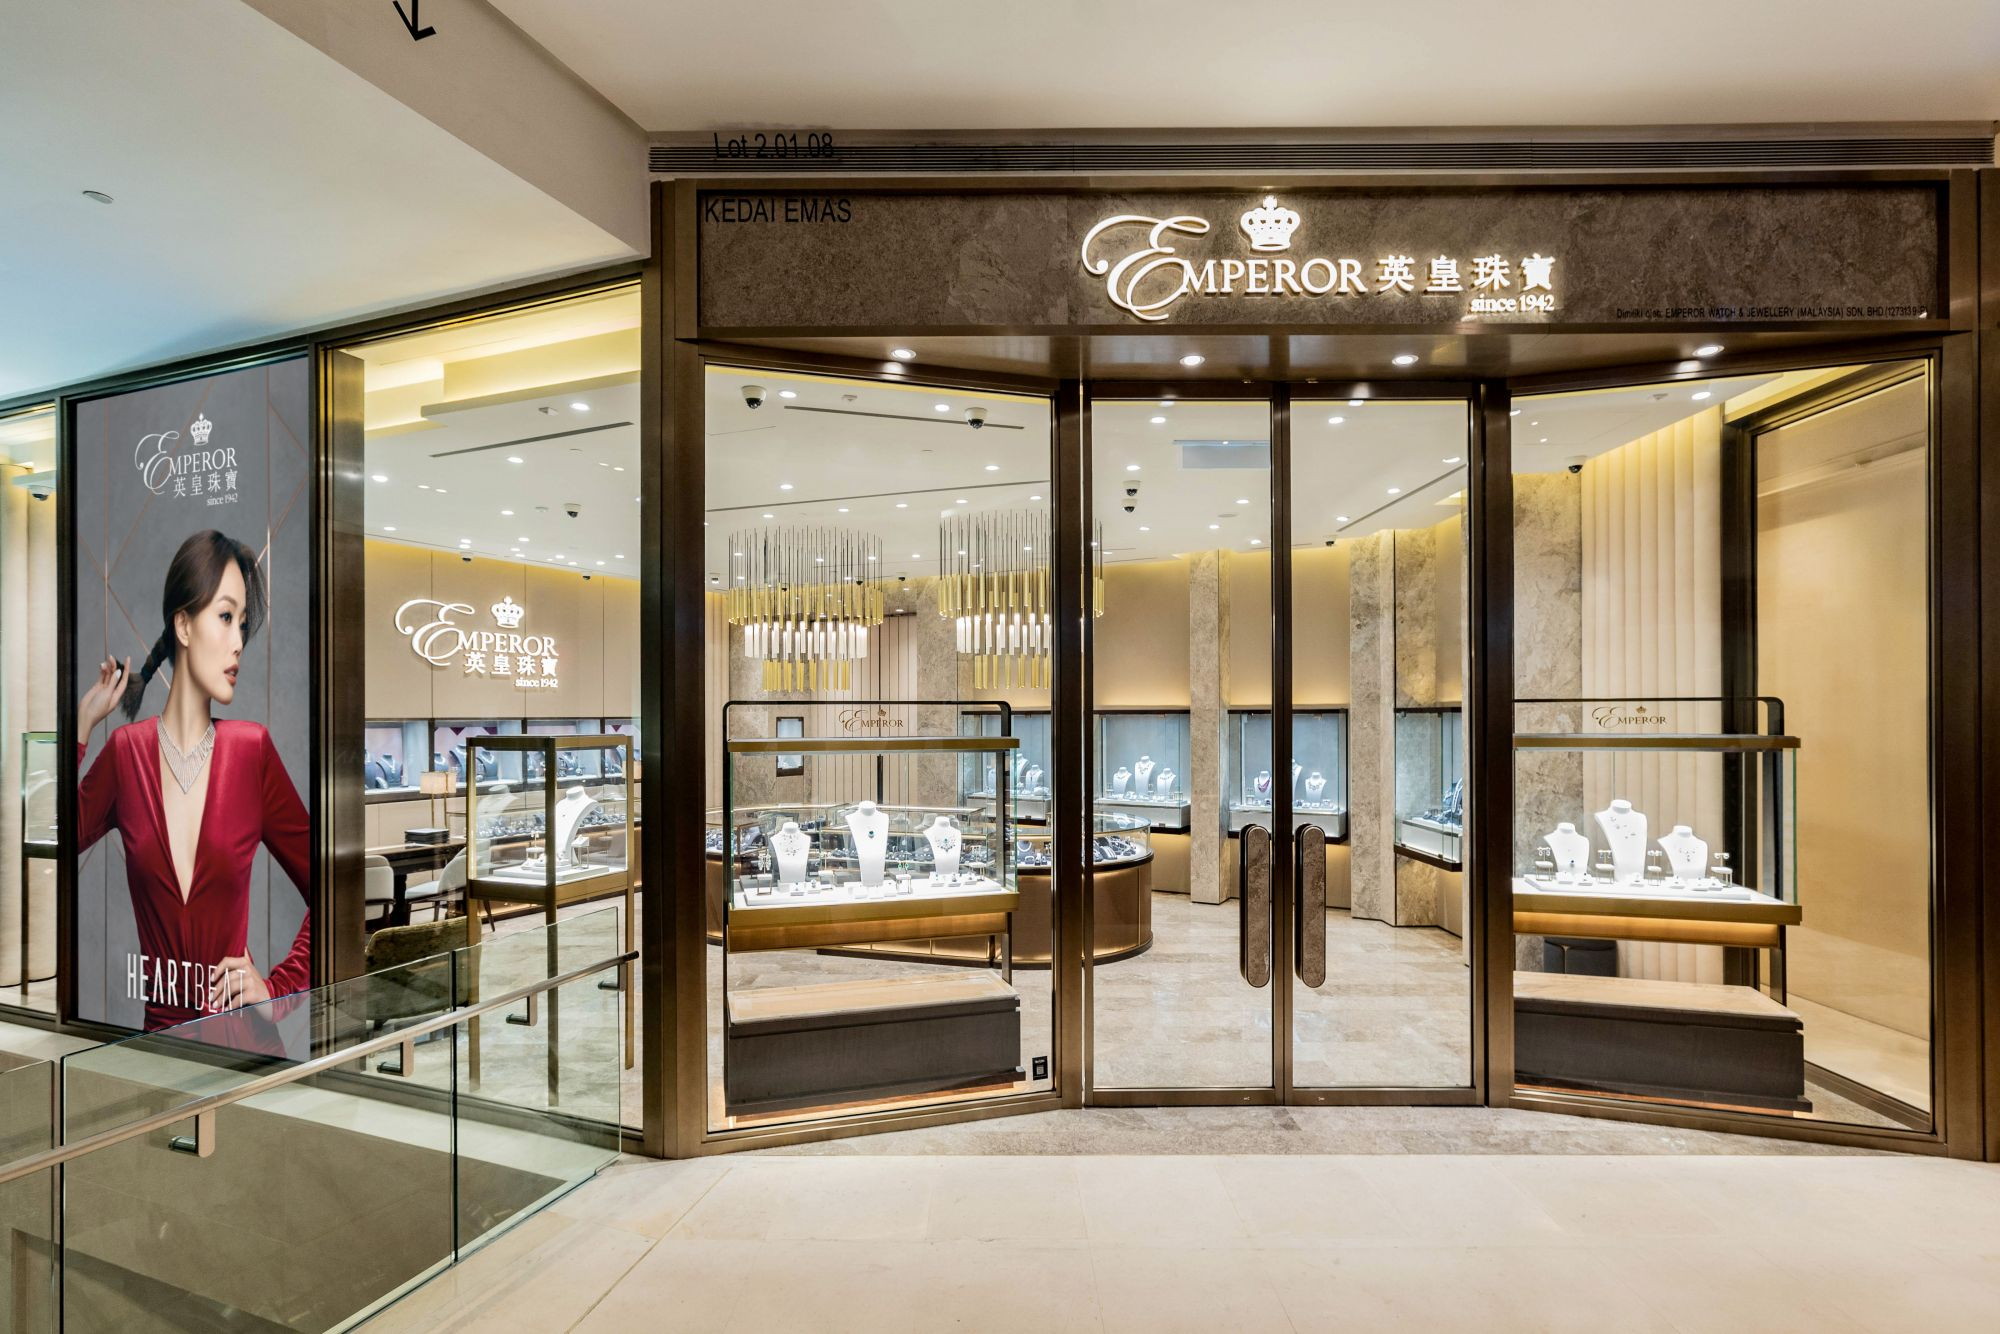 Emperor Jewellery Opens Flagship Store In Kuala Lumpur